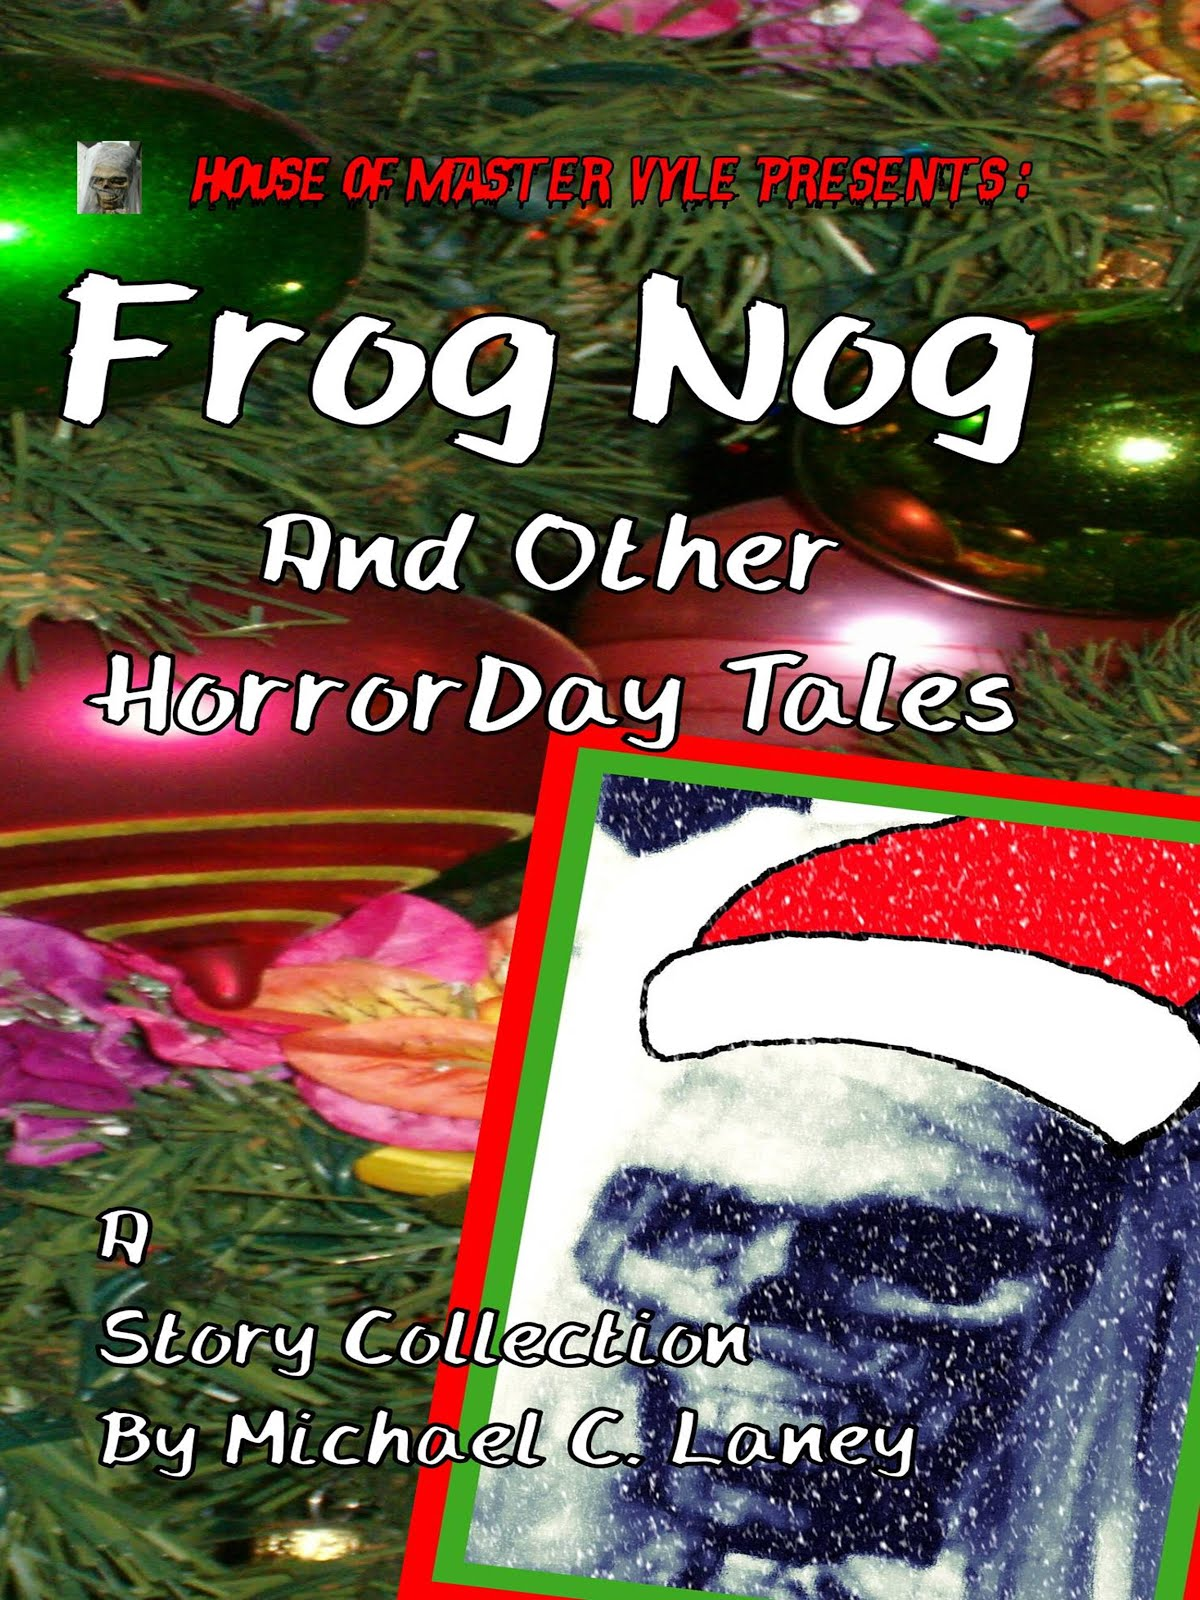 Frog Nog and Other HorrorDay Tales